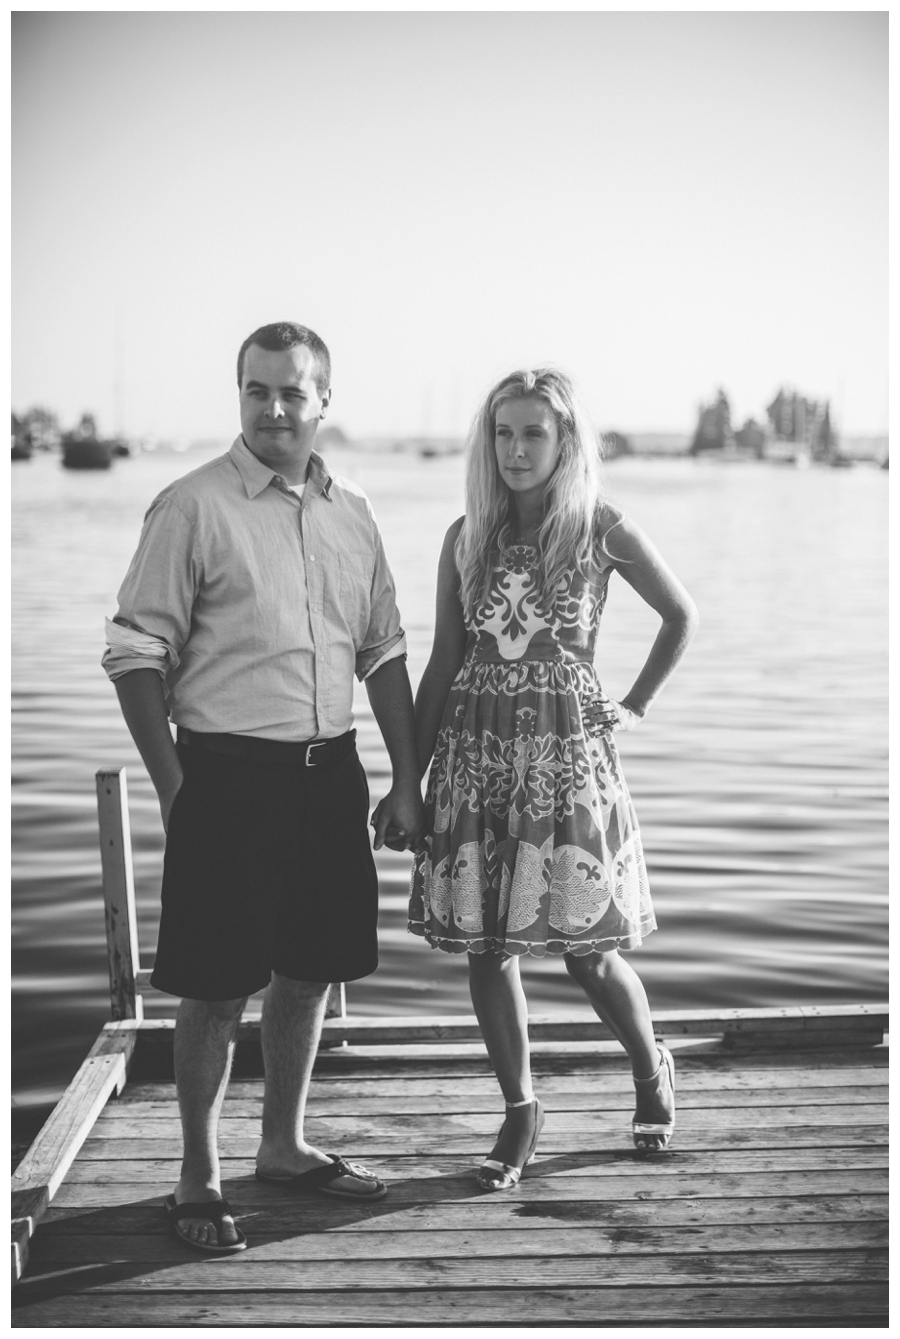 Maine_photographer_engagements_Boothbay_coast_ocean-004